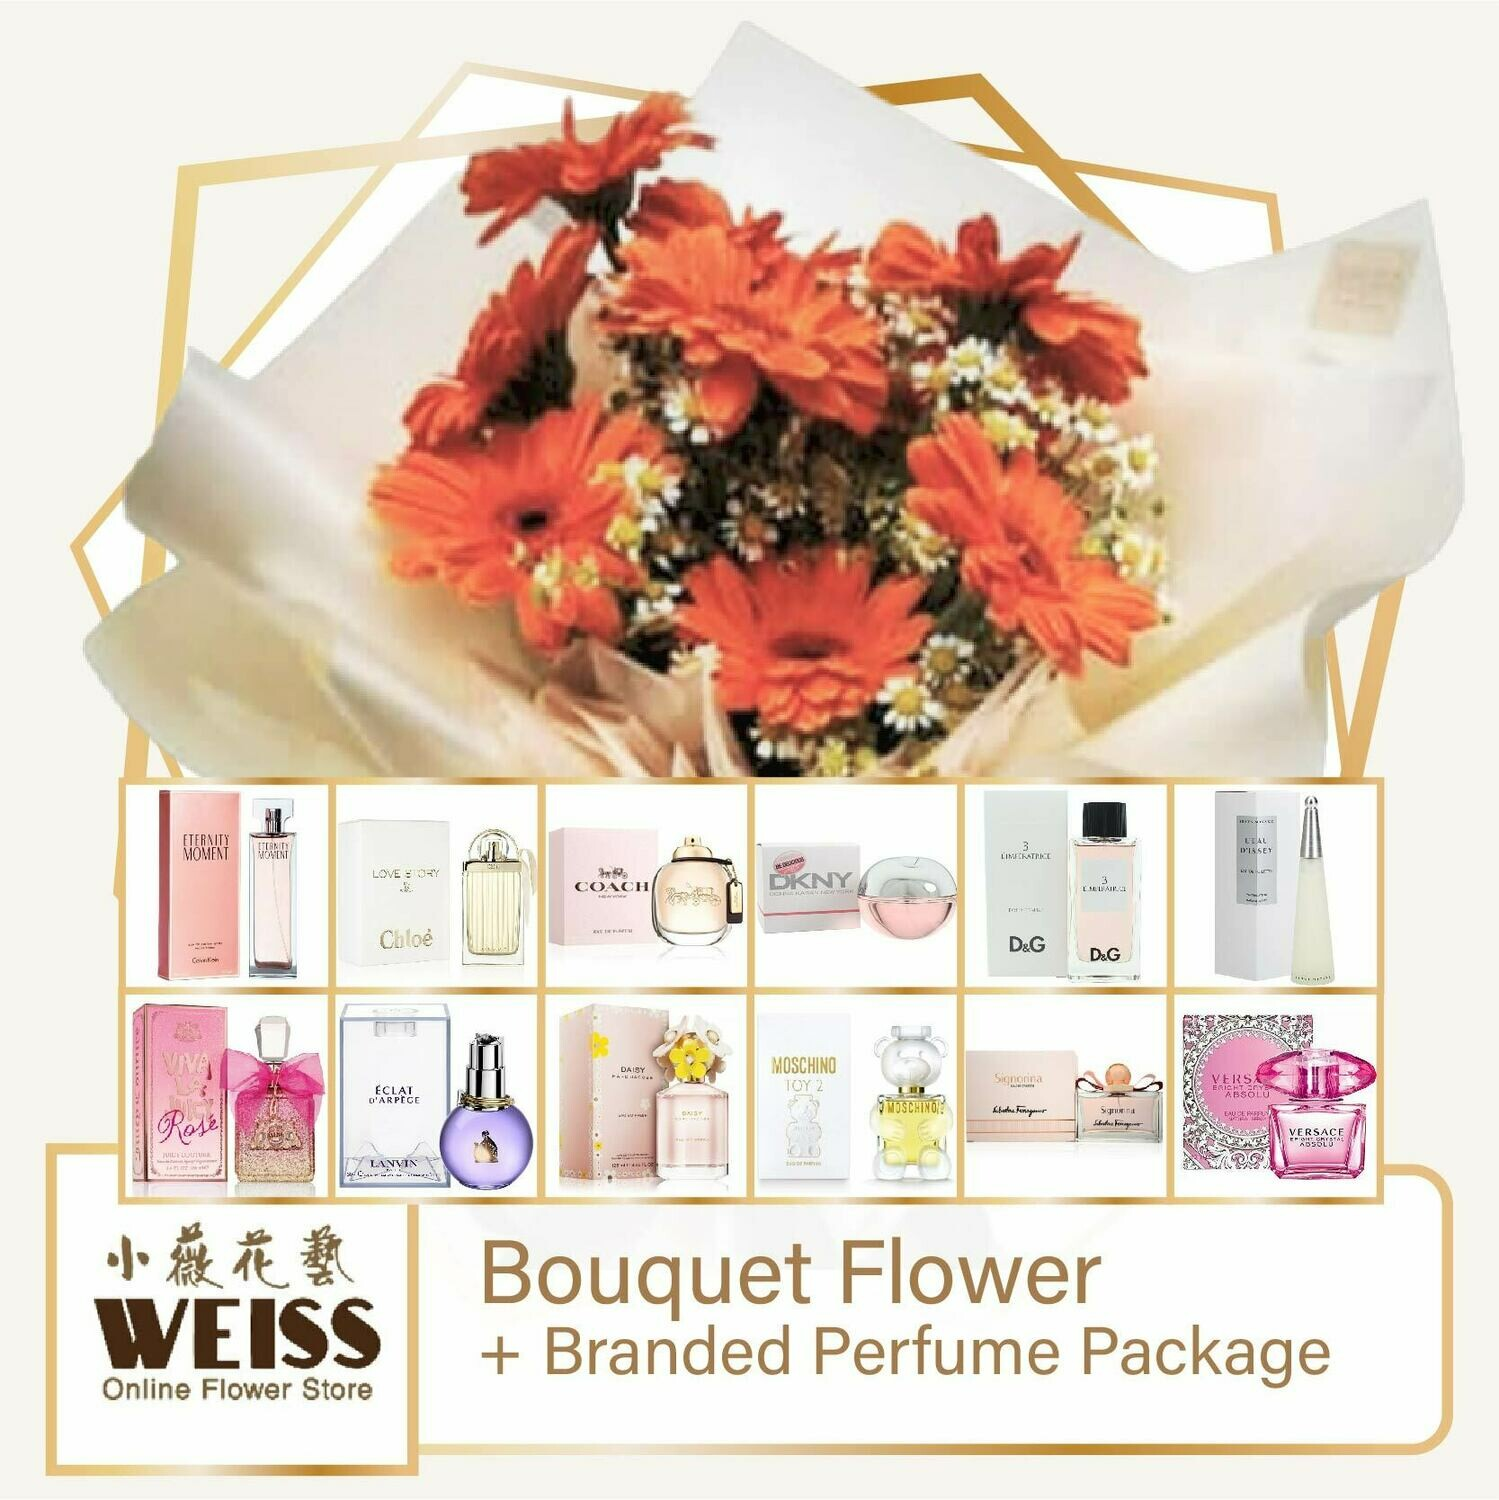 Weiss Florist 7 stalks Daisy + Branded Perfume Package (Free Shipping! Only deliver in JB)